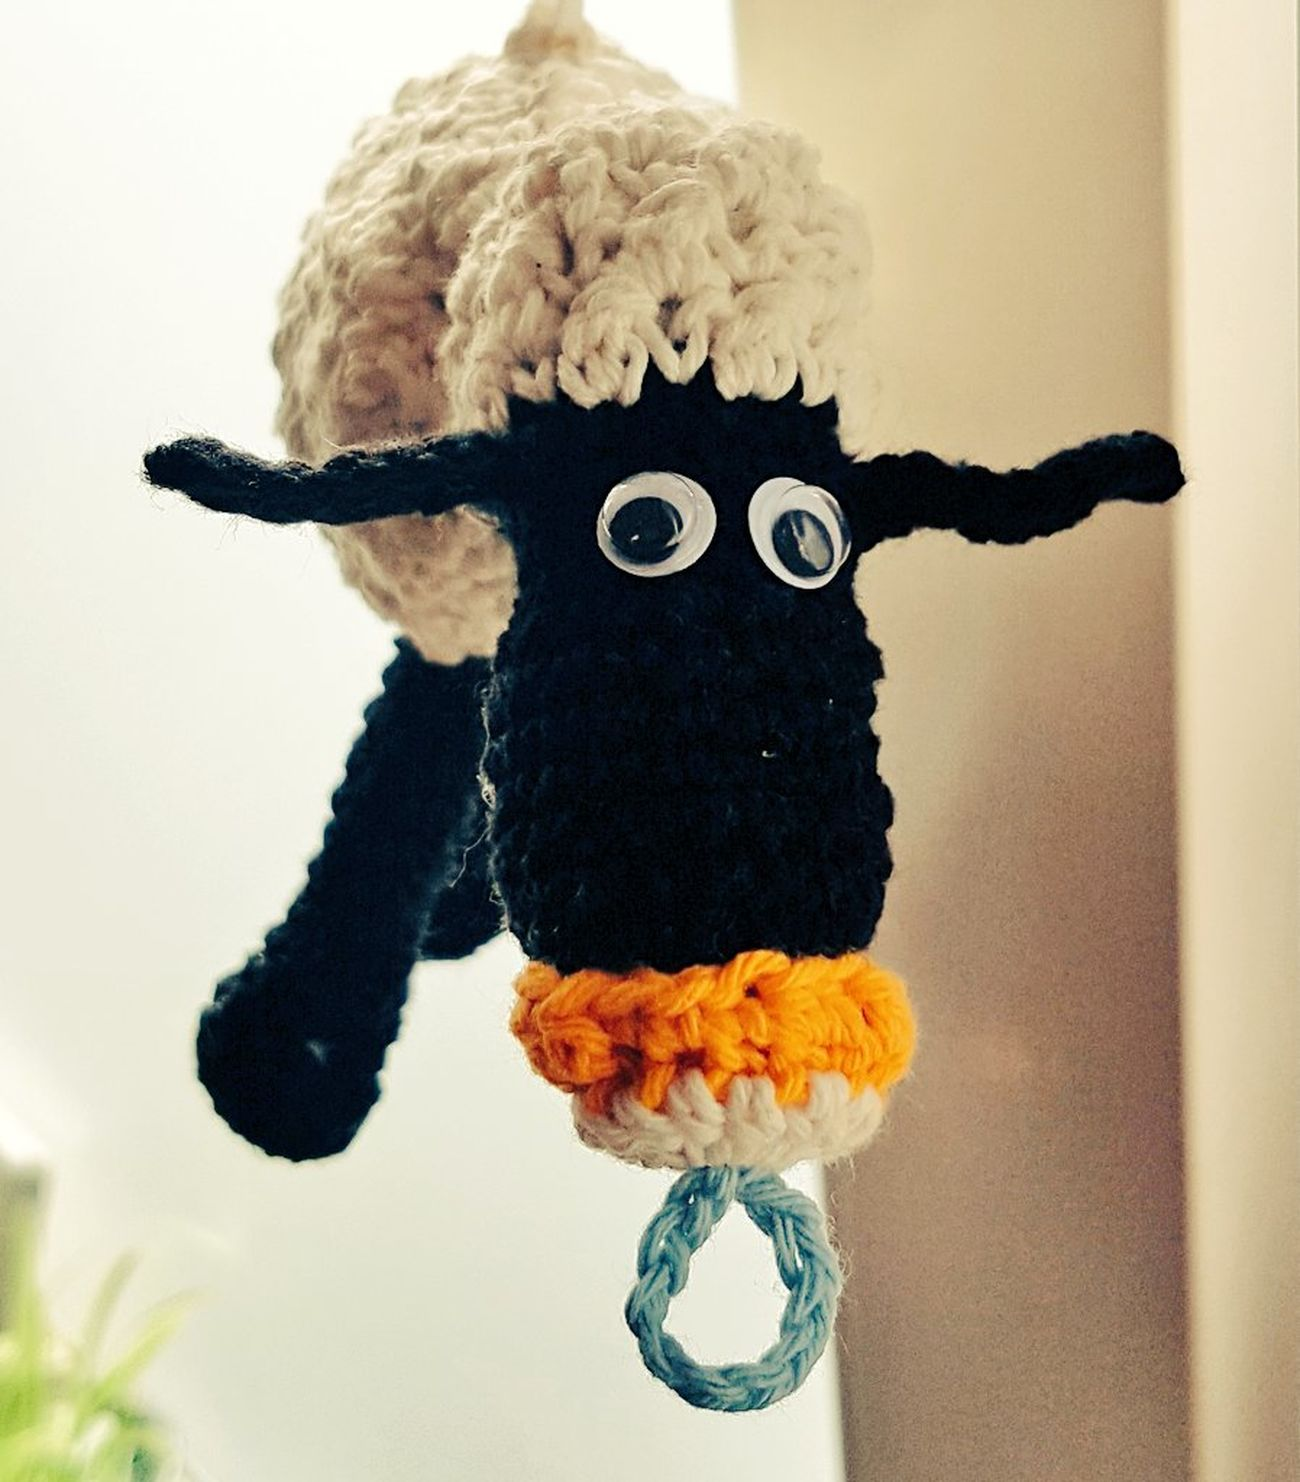 Toy Handmadewithlove MadebyMe ☝✌ Beautiful ♥ Copyright By LotusBlume69 😉 👍 Streamzoofamily Friends Streamzoo Family Sheep Sheep🐑